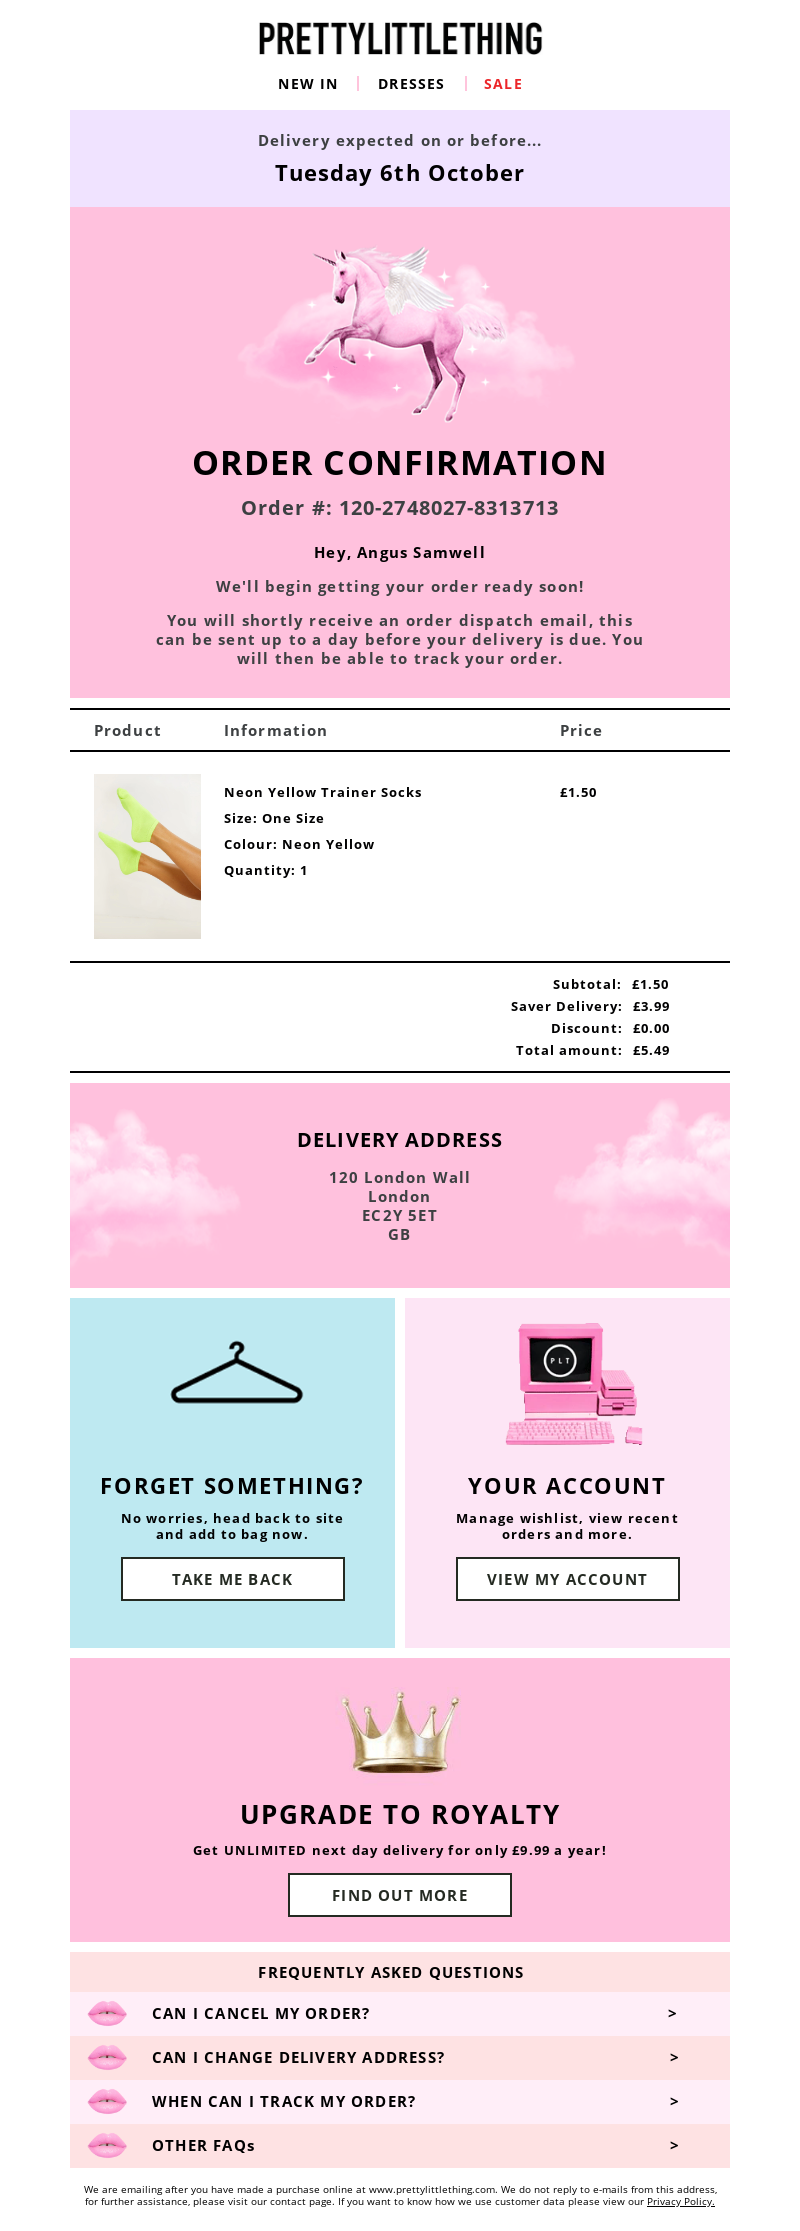 PrettyLittleThing (UK) - Your order confirmation (#120-2748027-8313713)